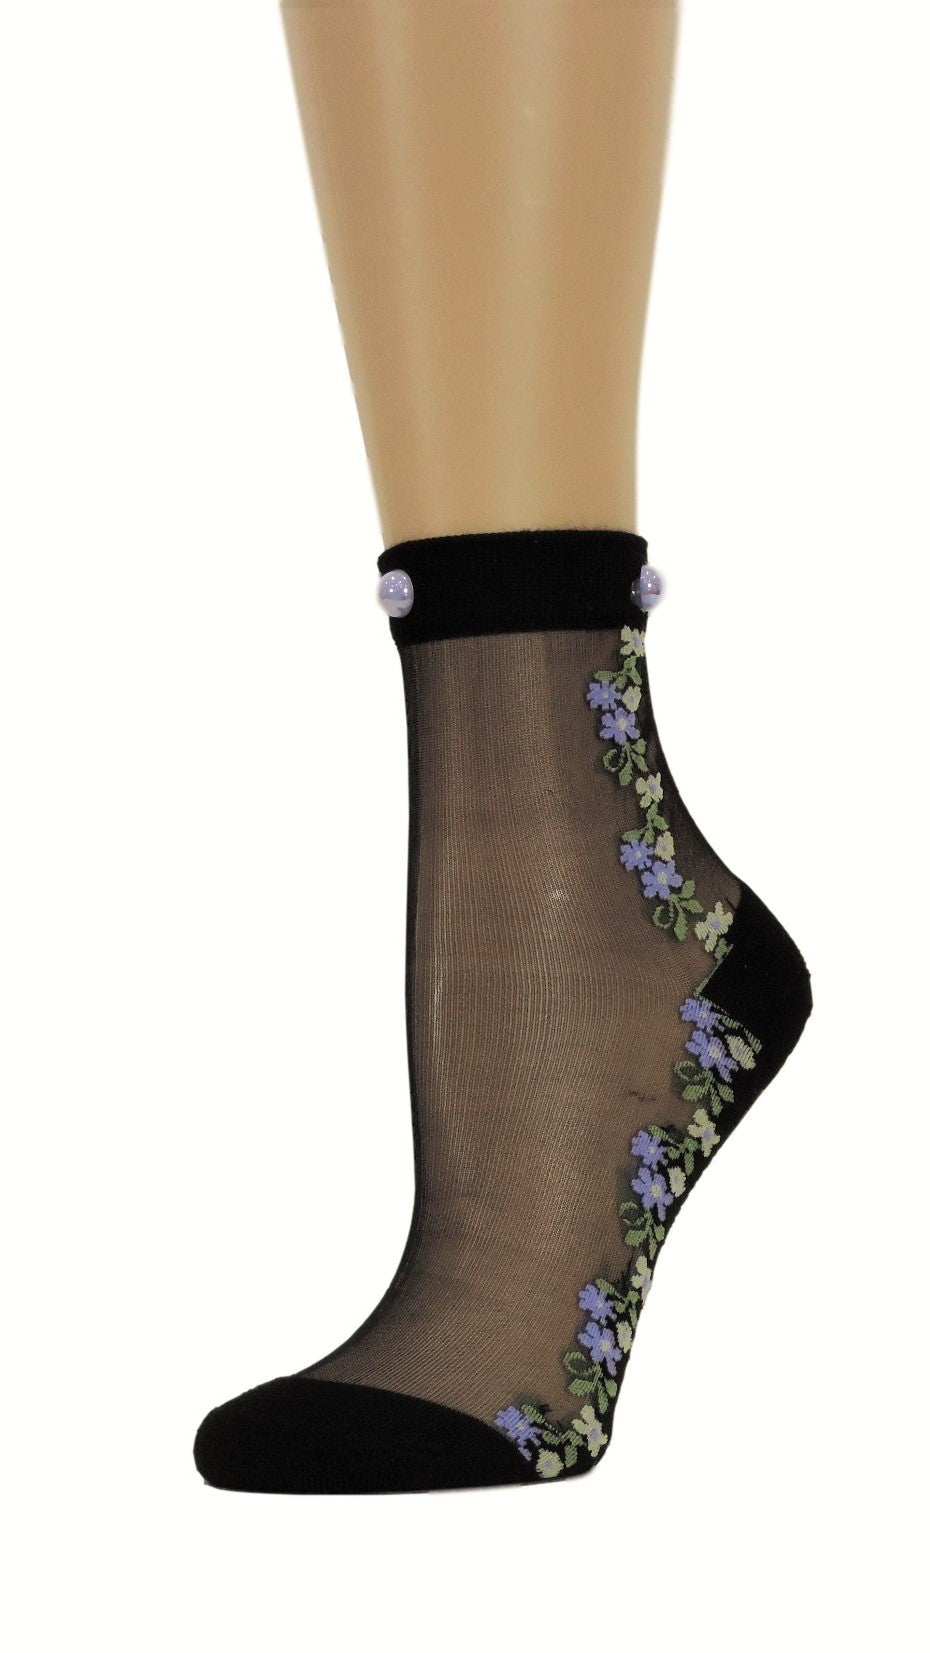 Delicate Flowers Custom Sheer Socks with beads - Global Trendz Fashion®